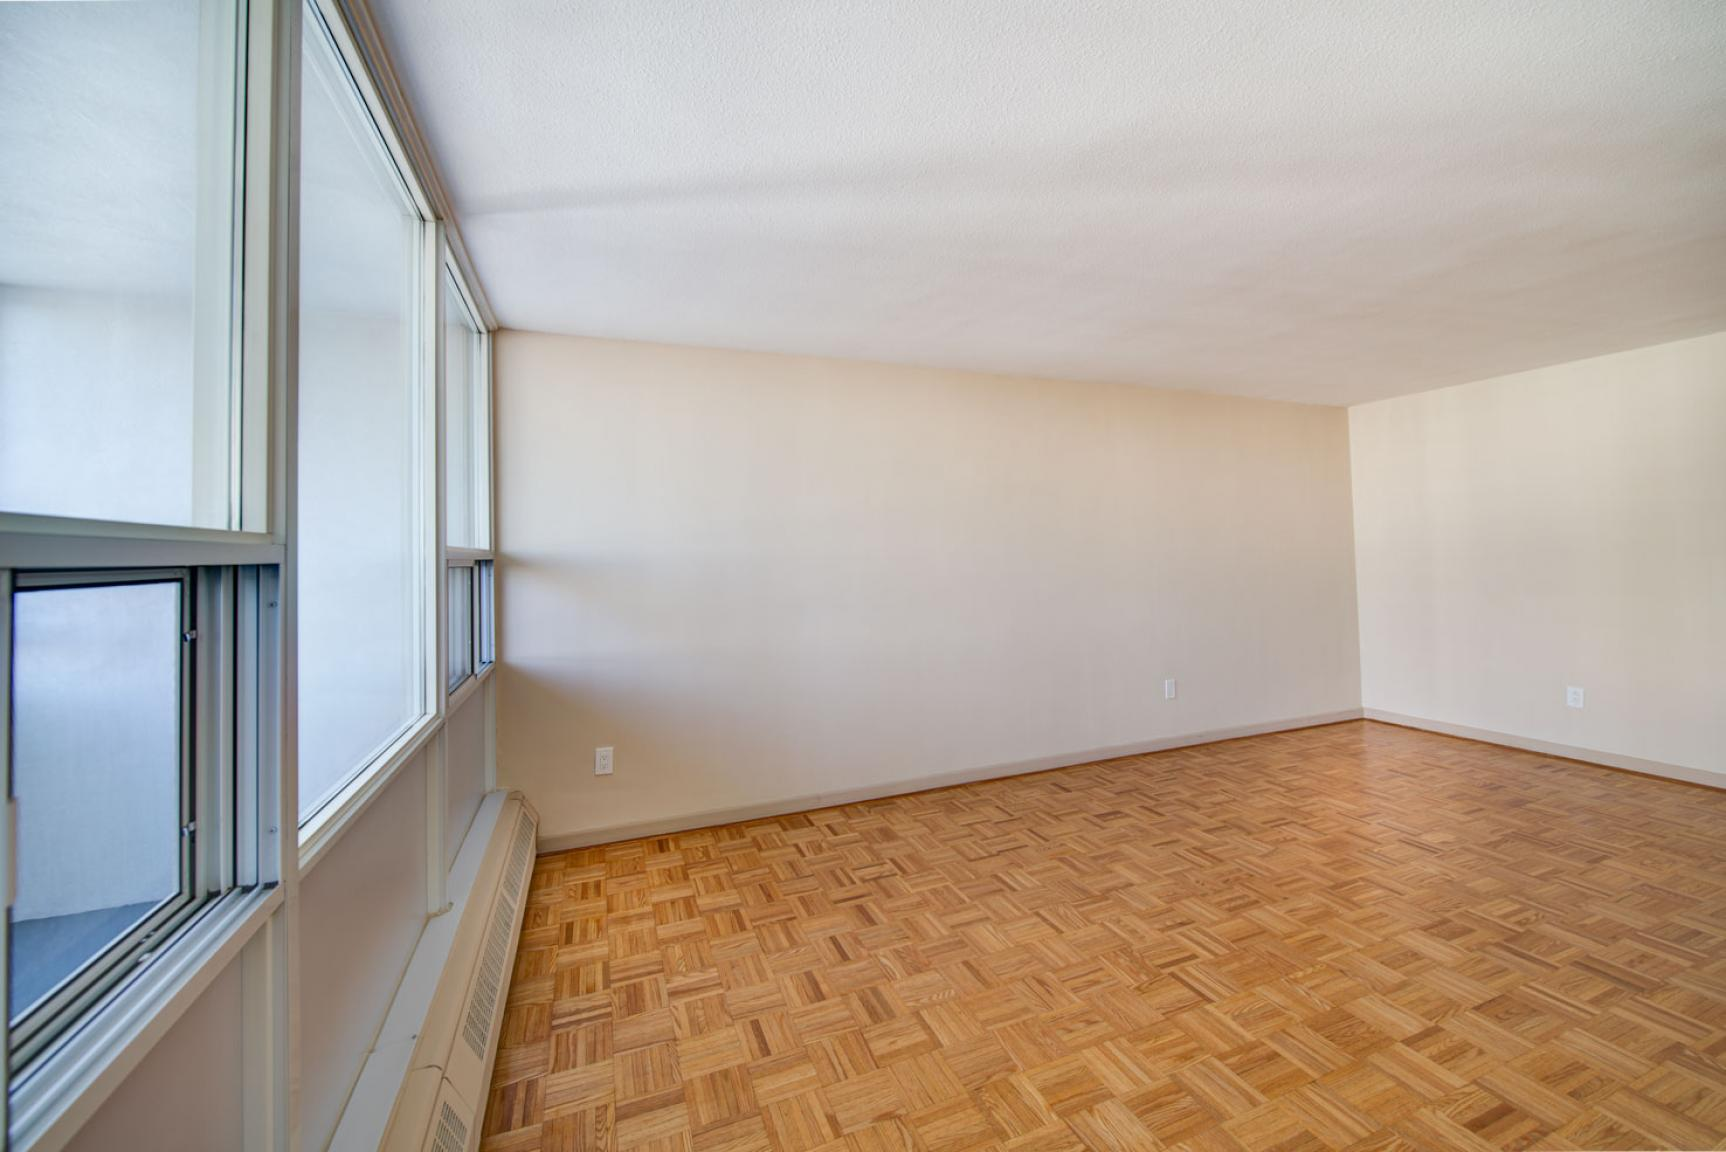 Studio / Bachelor Apartments for rent in Toronto at Dunfield Tower - Photo 10 - RentersPages – L138878